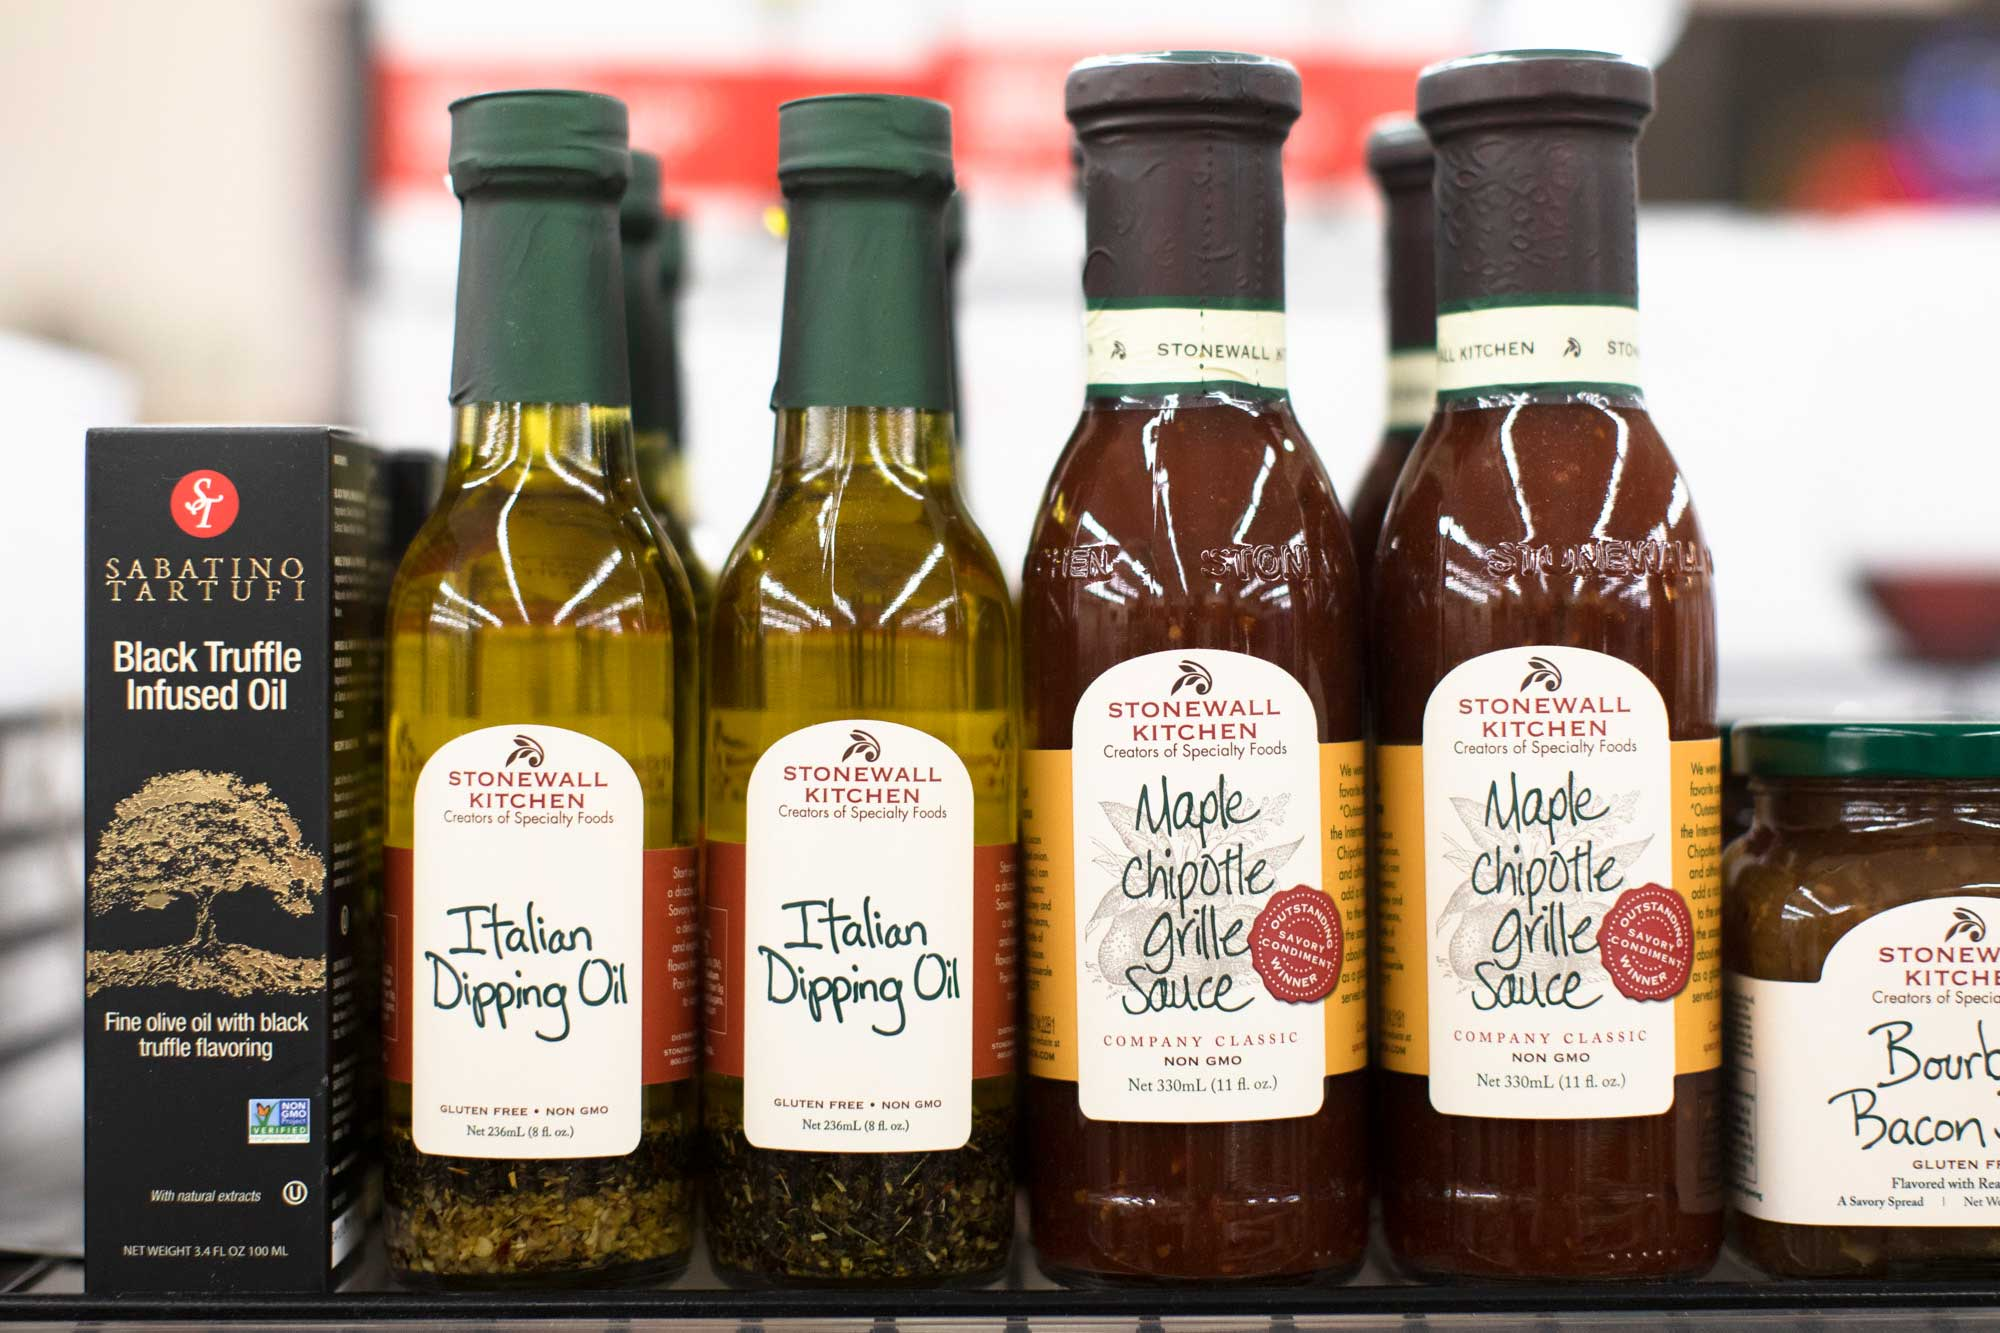 Stonewall Kitchen dipping oils and sauces